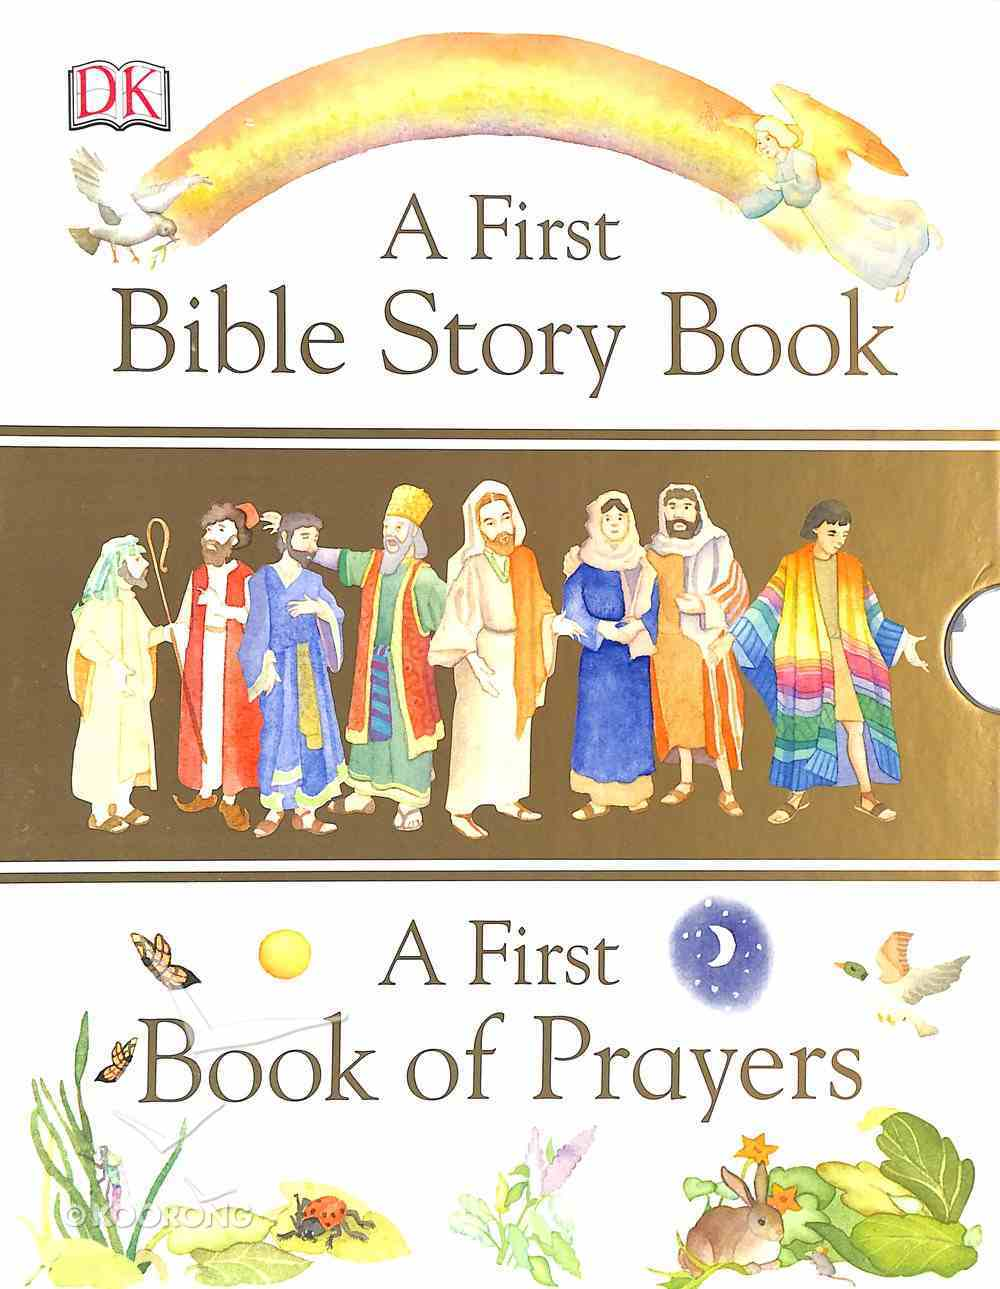 A First Bible Story Book: And a First Book of Prayers Paperback